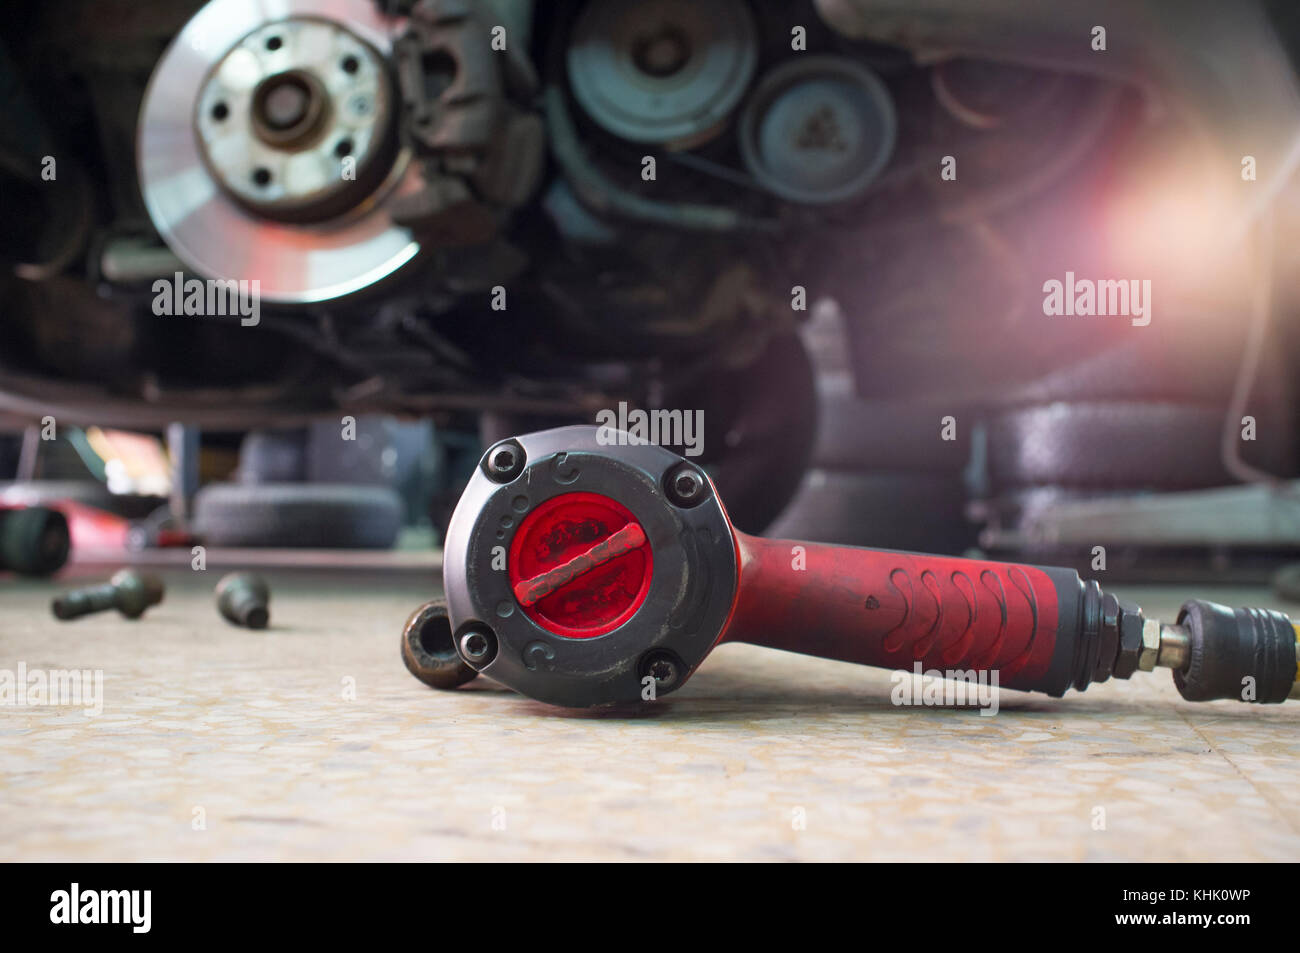 Pneumatic wrench screwing mechanic tool and knots with no wheel car at bottom - Stock Image